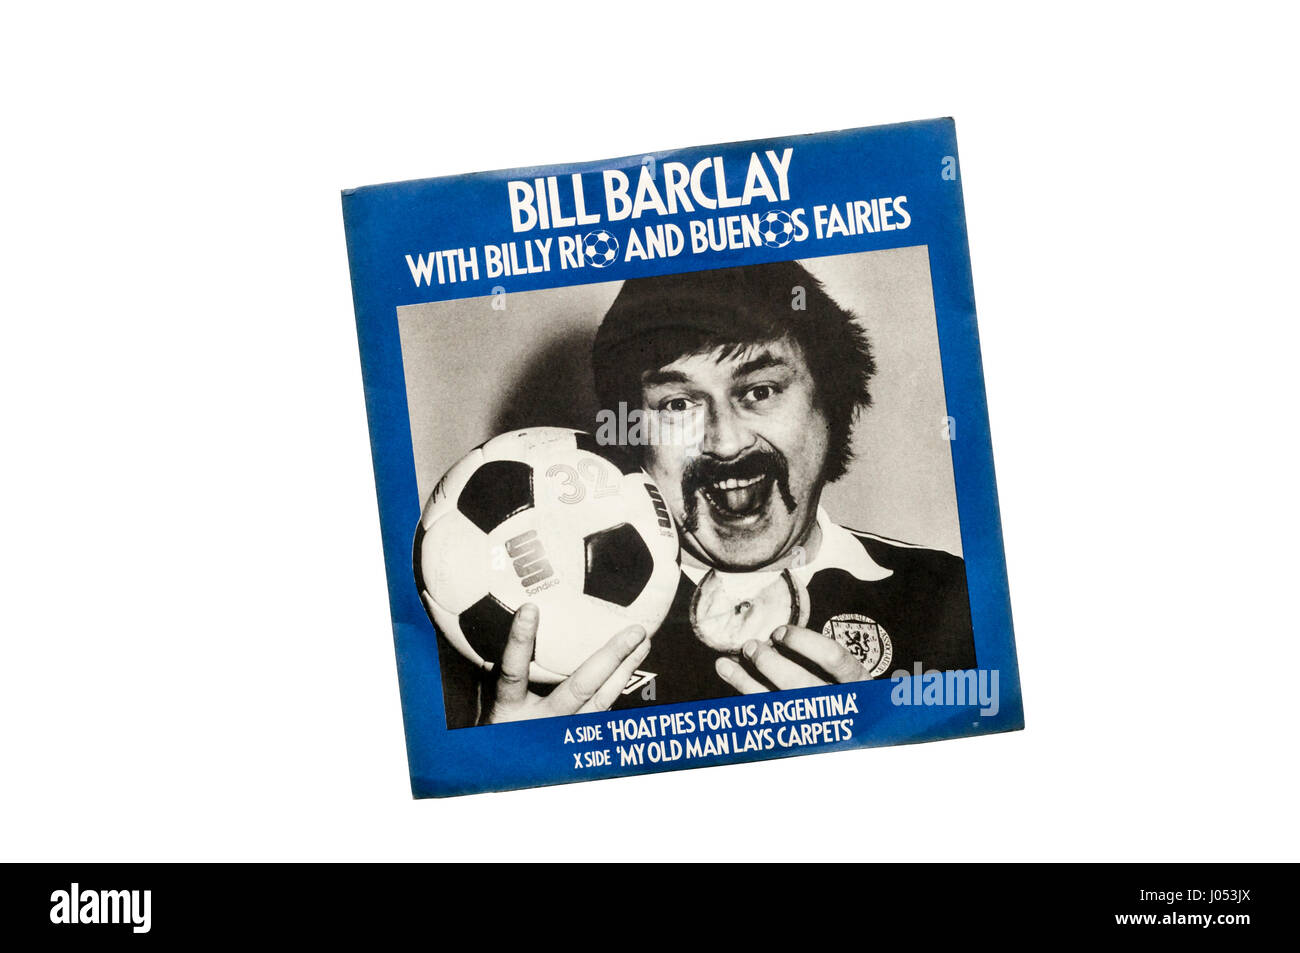 1978 World Cup novelty record, Hoat Pies For Us Argentina, by Bill Barclay with Billy Rio and Buenos Fairies. - Stock Image